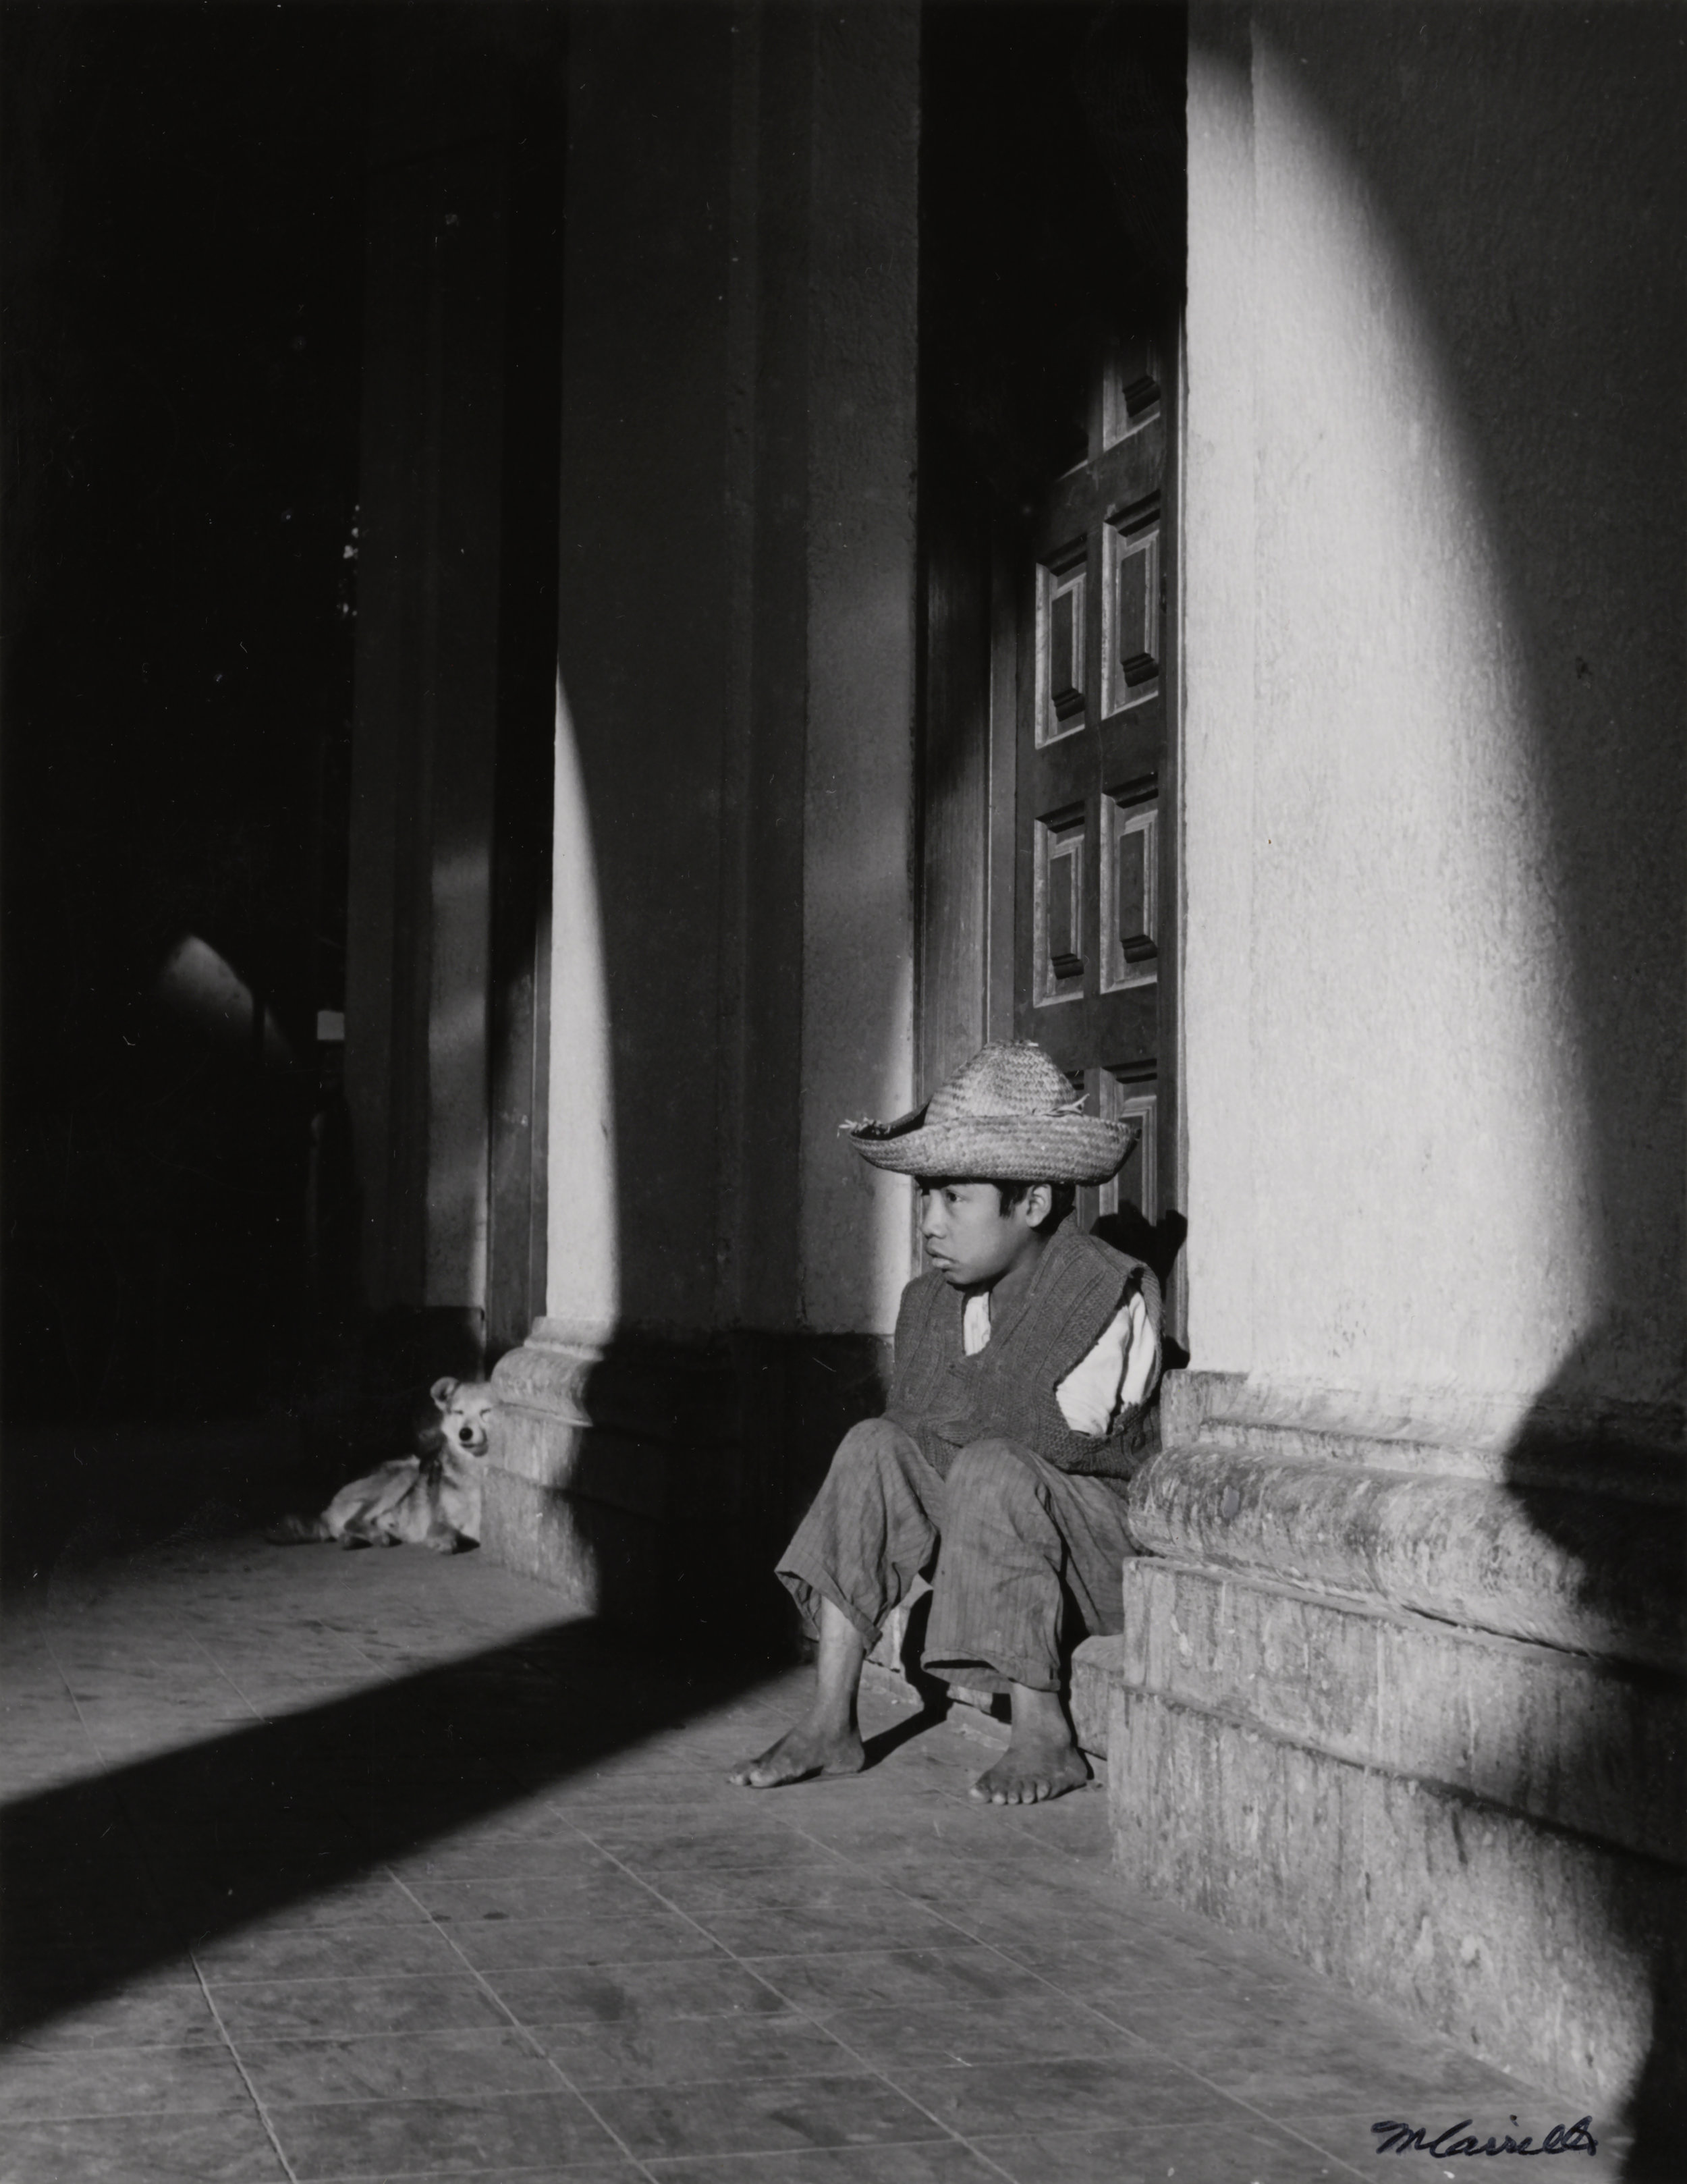 Boy Seated on Step in Doorway  (Teziutlán, Puebla), 1971. Black & White photograph on paper. 8 x 10